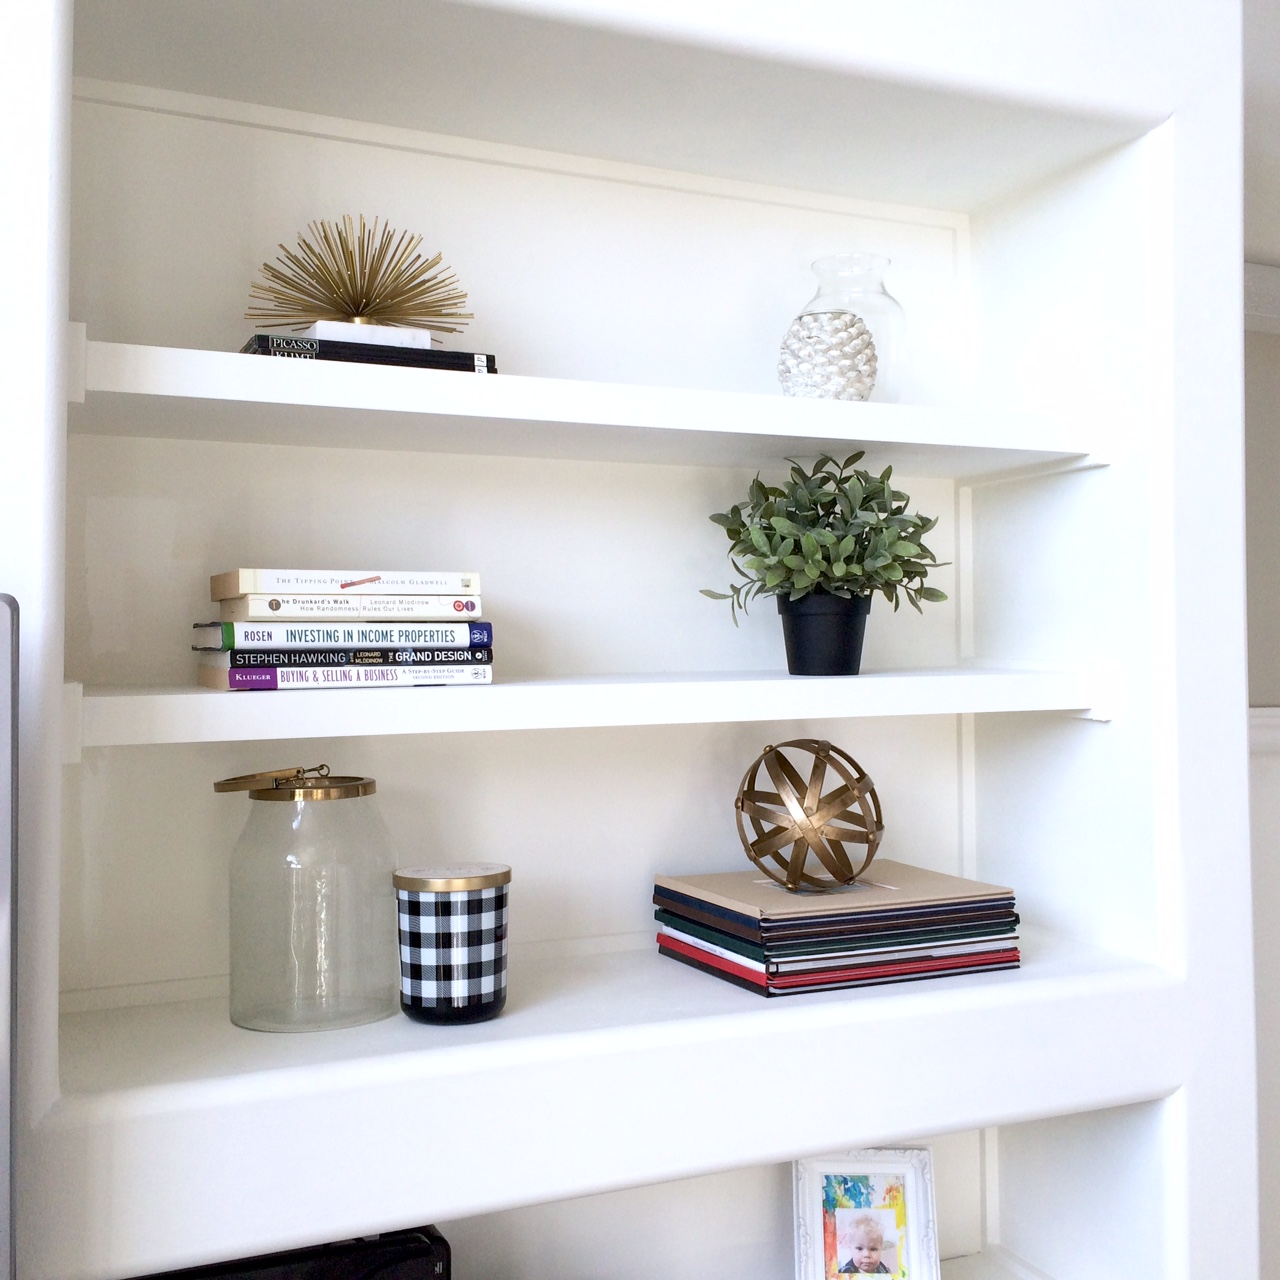 How to style a bookcase | Harlow & Thistle - Home Design ...